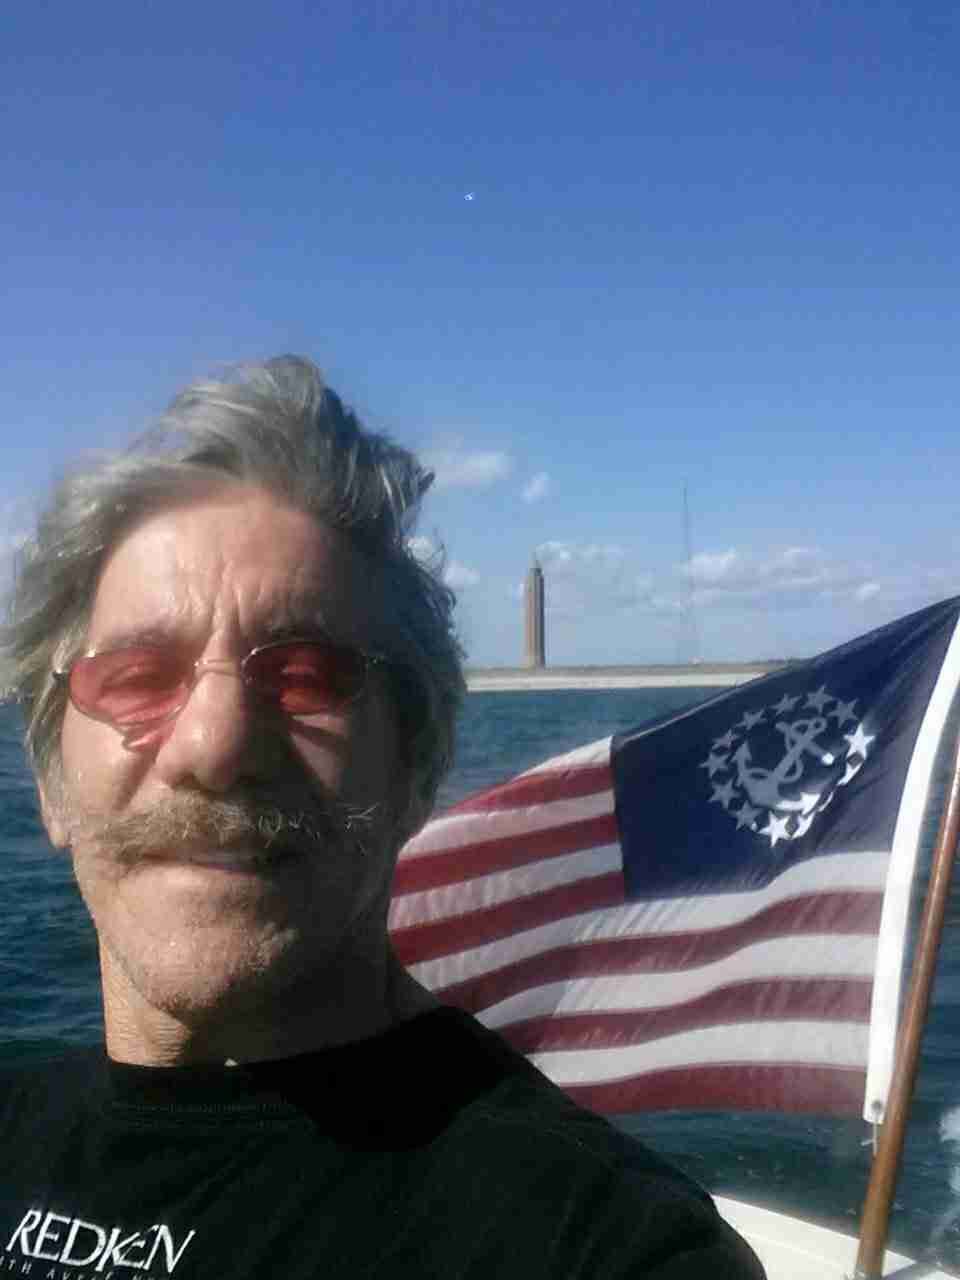 Geraldo on the way home after returning from Fire Island Inlet aboard vessel Belle.